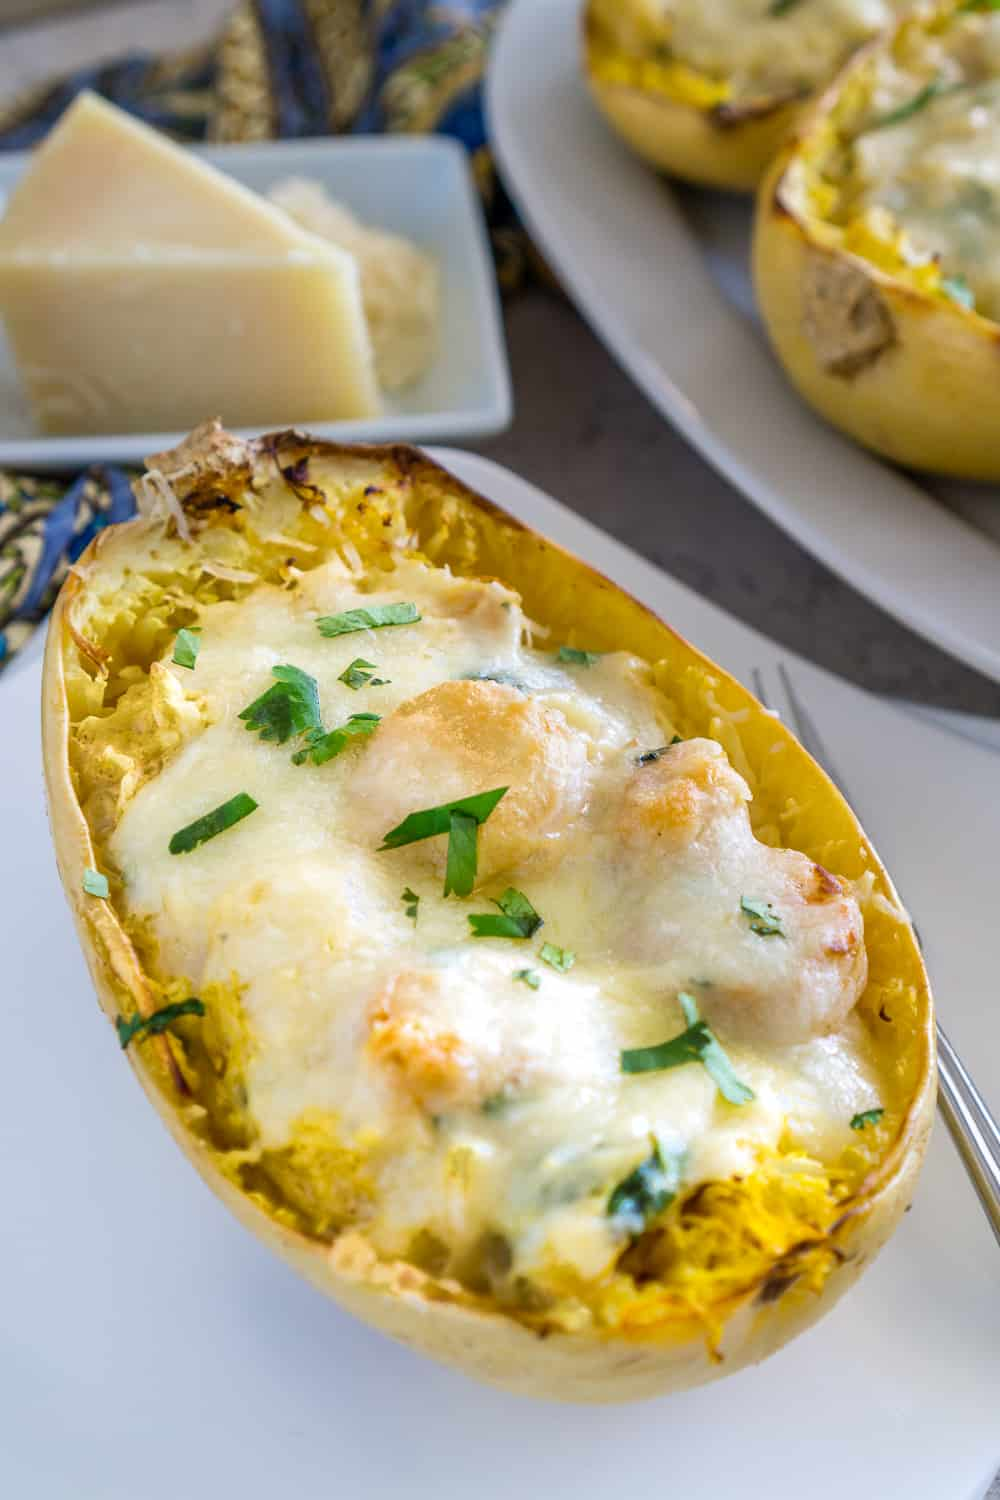 image of roasted spaghetti squash boats with shrimp Alfredo